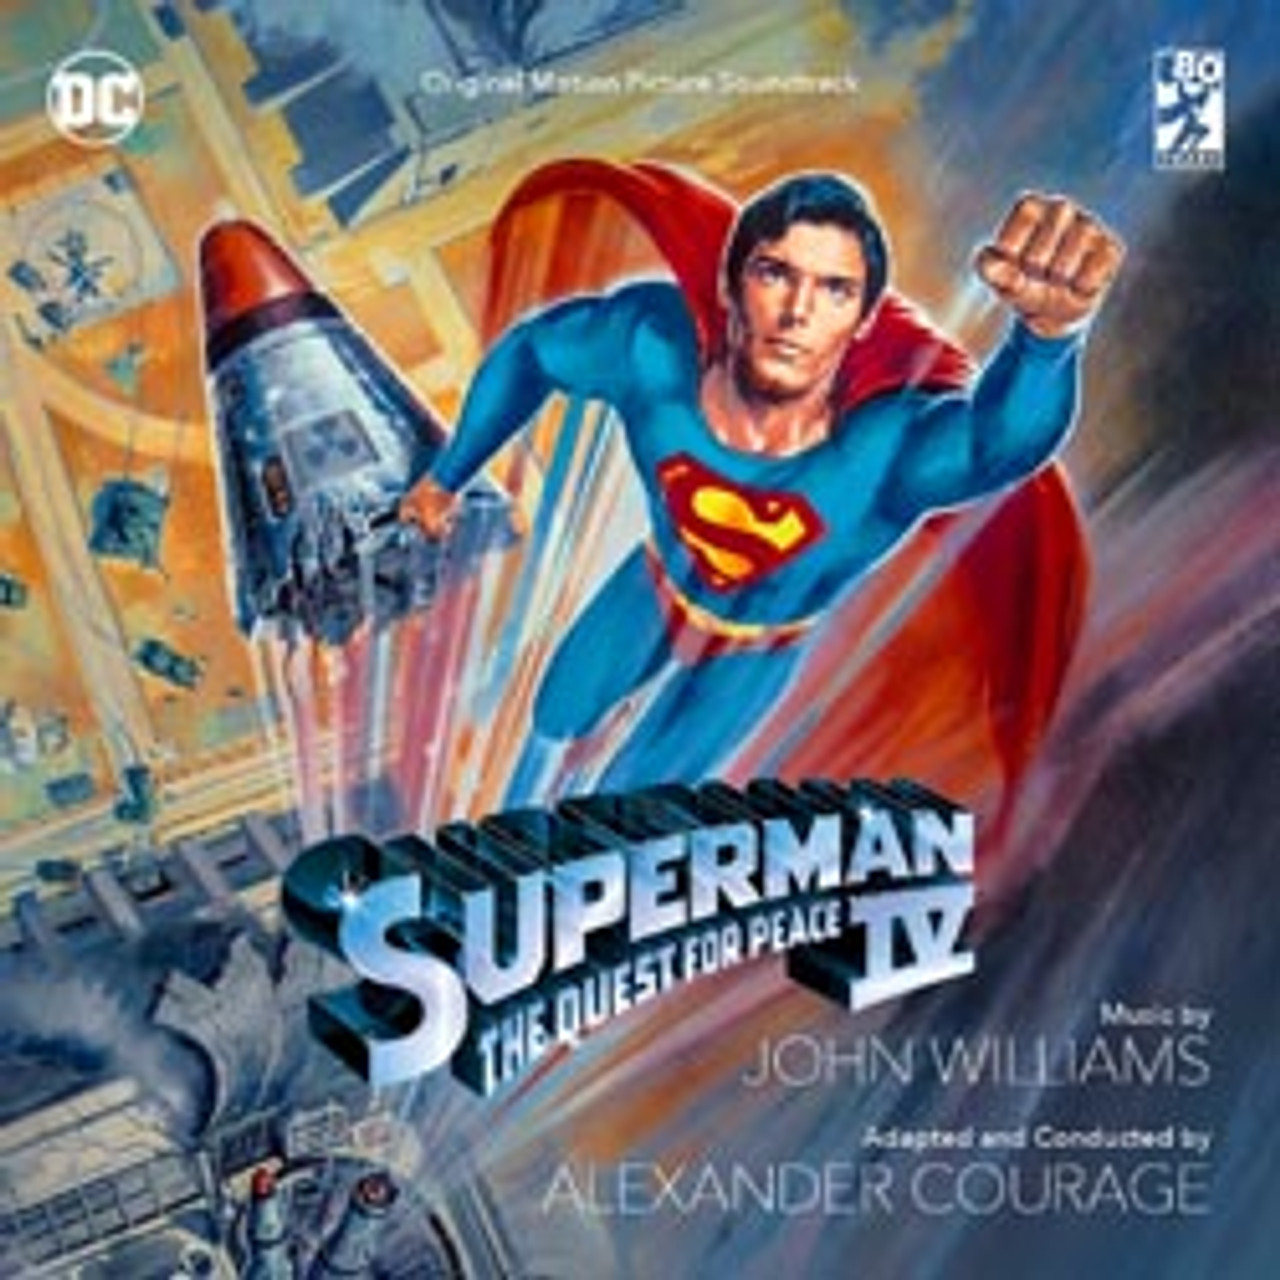 SUPERMAN IV – THE QUEST FOR PEACE: LIMITED EDITION (2-CD SET)